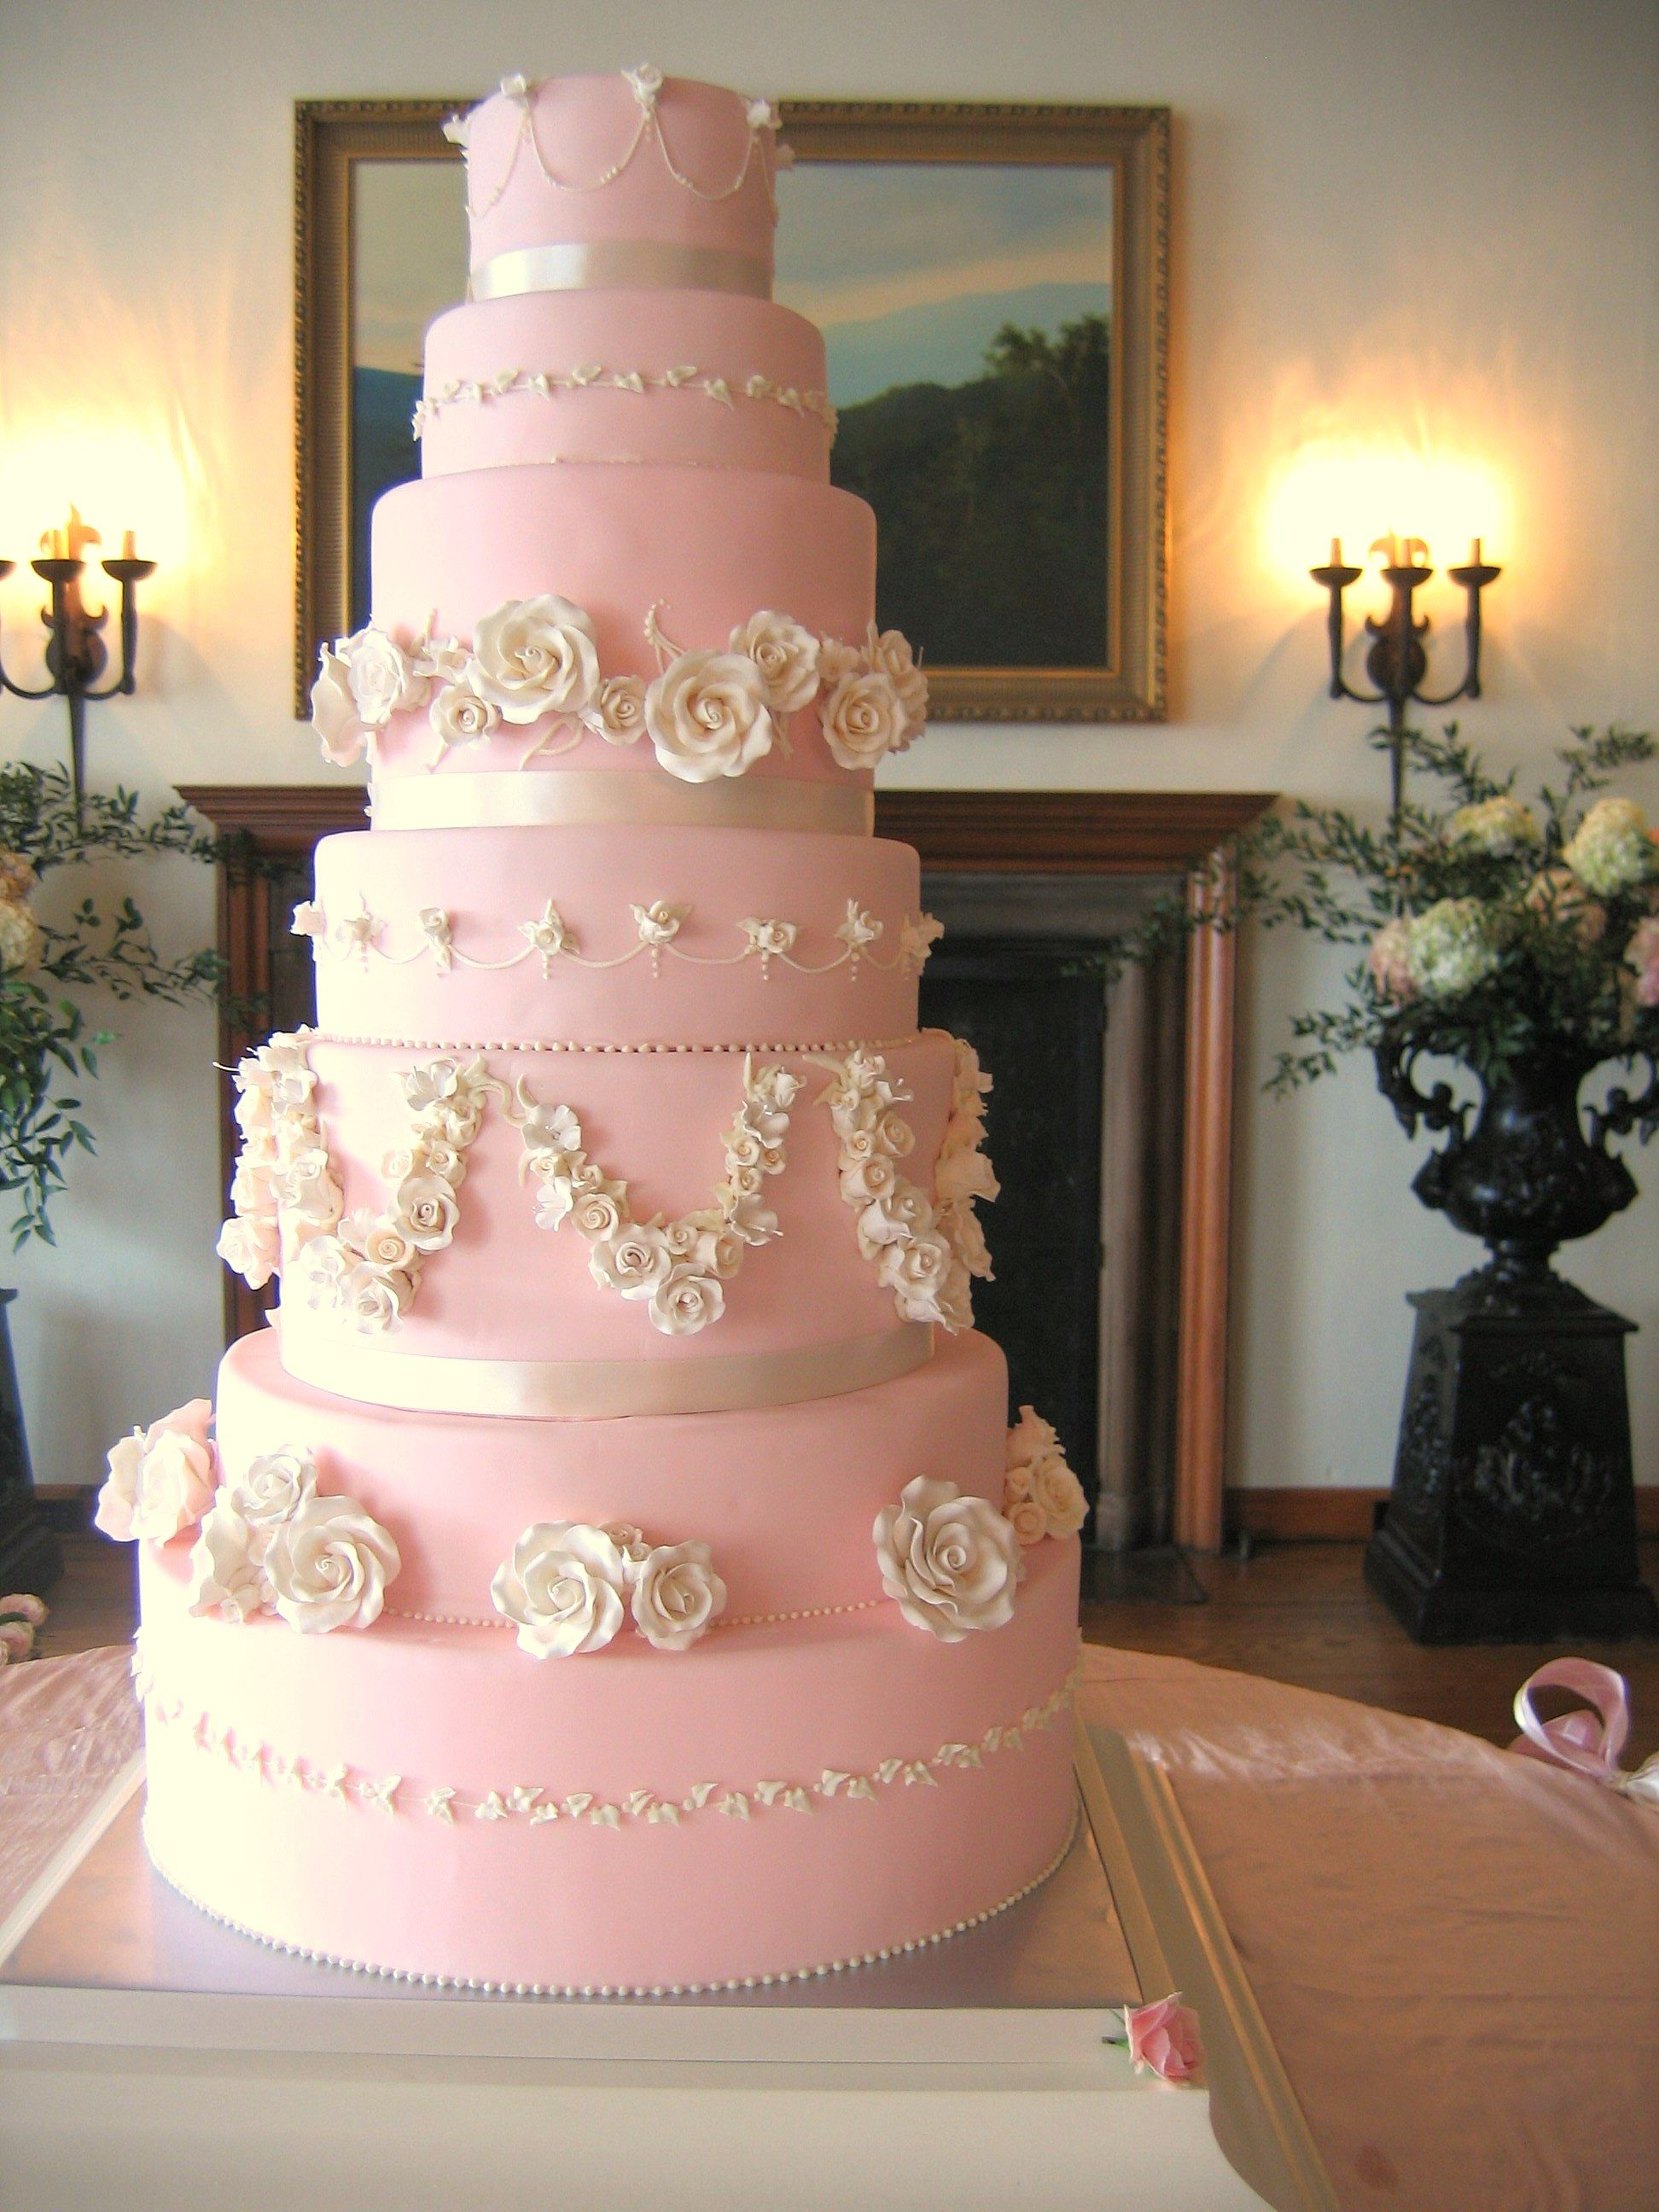 Magpies Bakery Knoxville  TN Custom pink buttercream cake with gum     Magpies Bakery Knoxville  TN Custom pink buttercream cake with gum paste  floral accessories